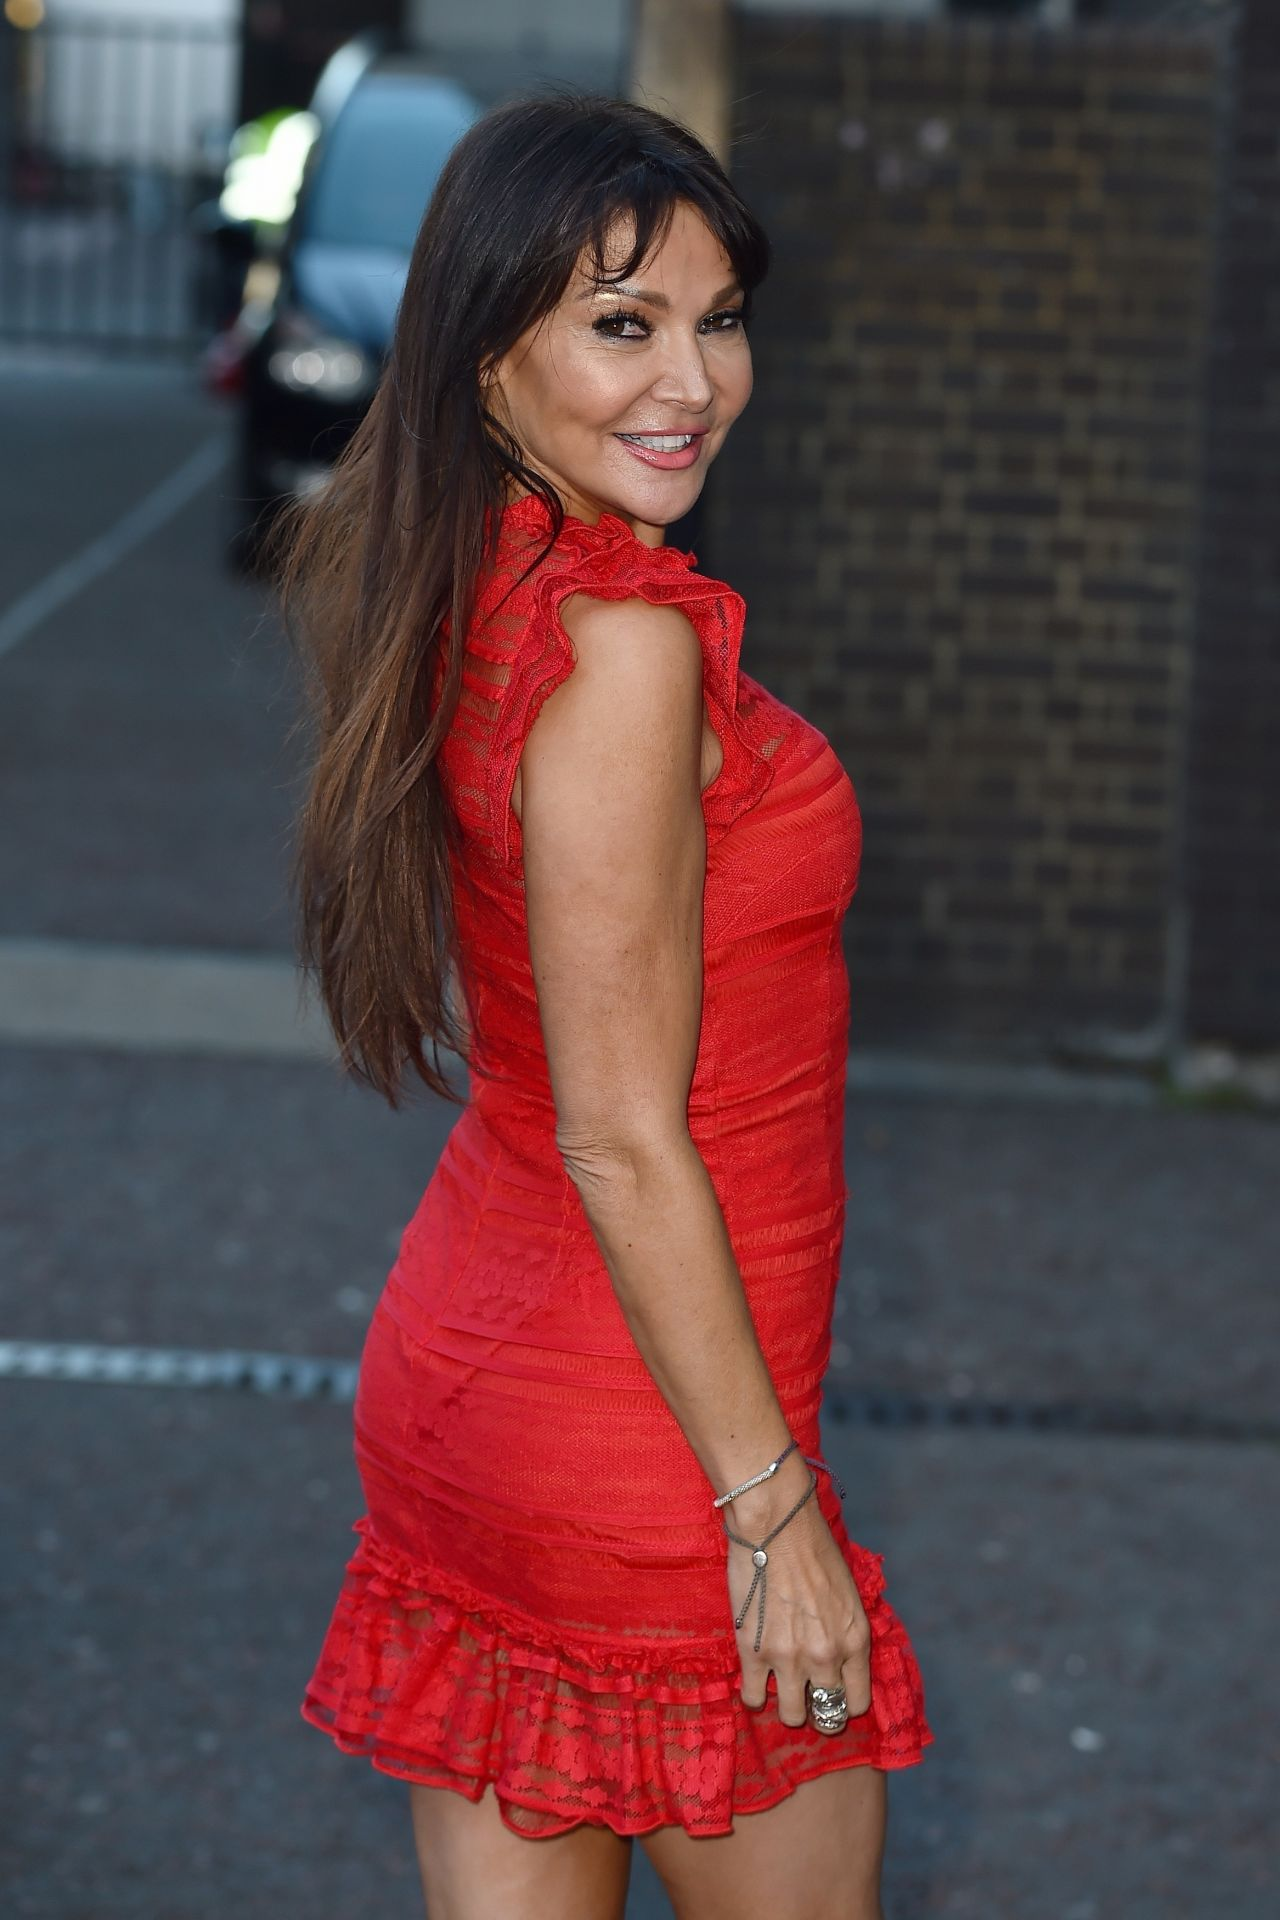 Lizzie Cundy In A Red Mini Dress At The Itv Studios In